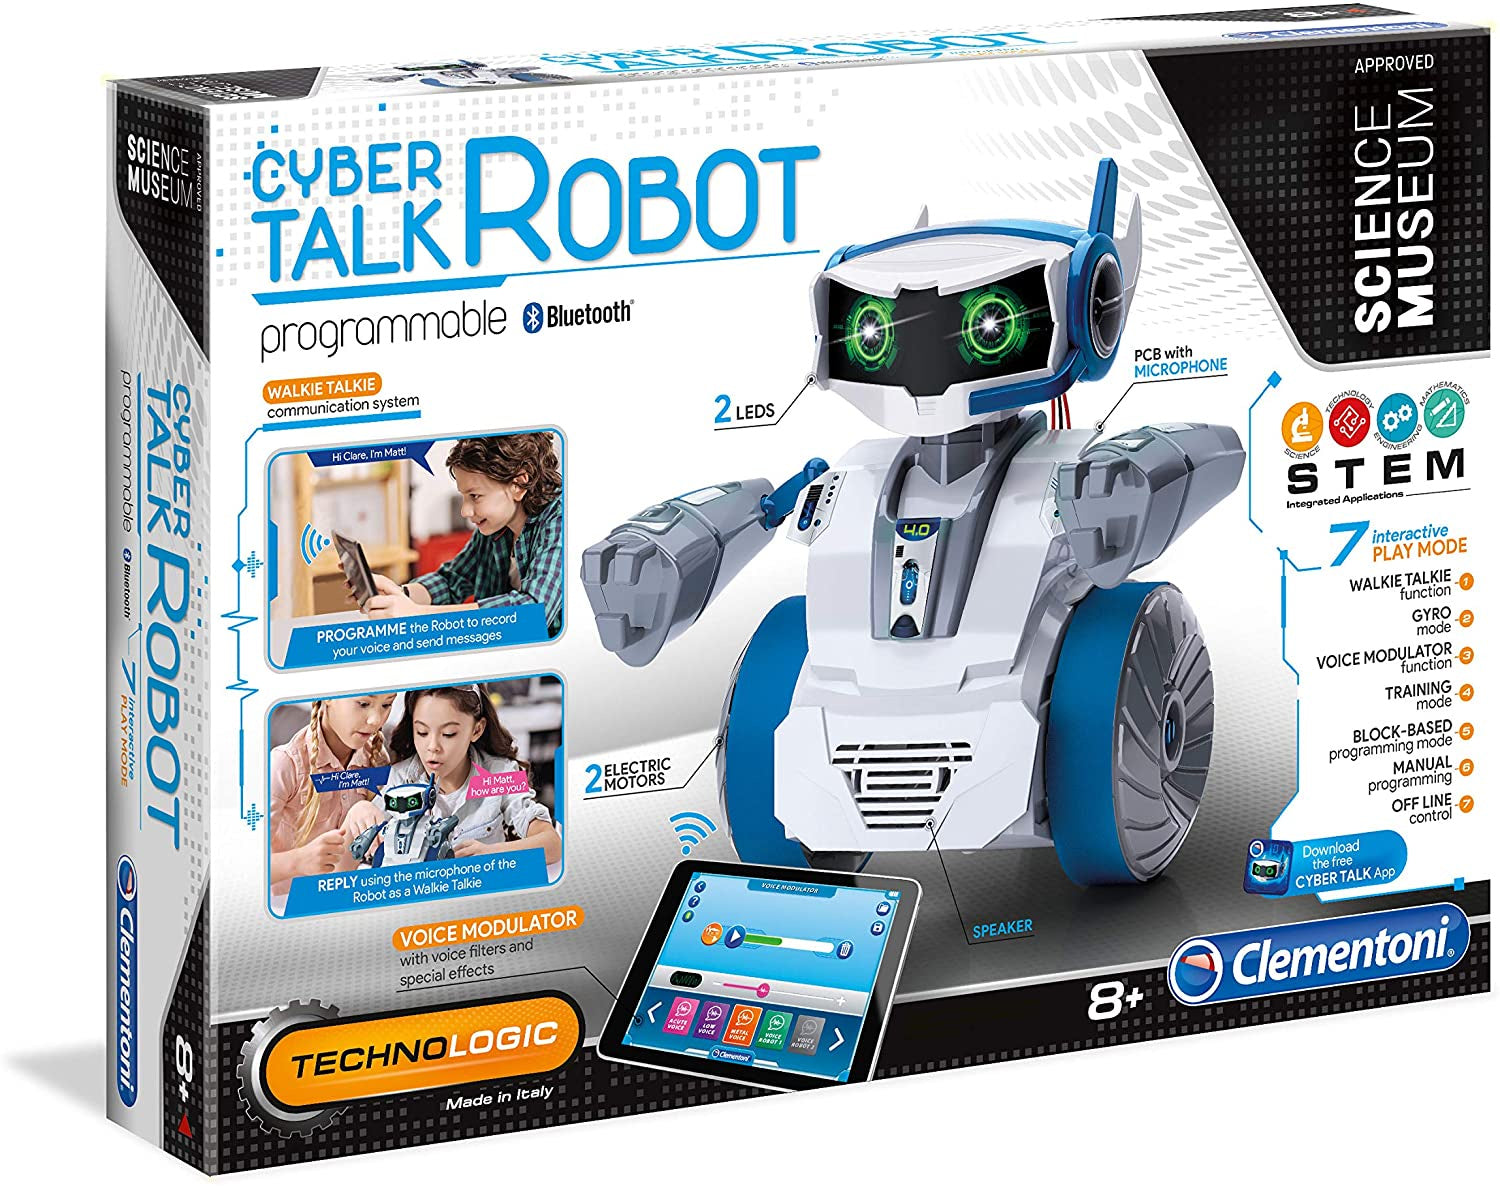 Science Museum Cyber Talk Robot